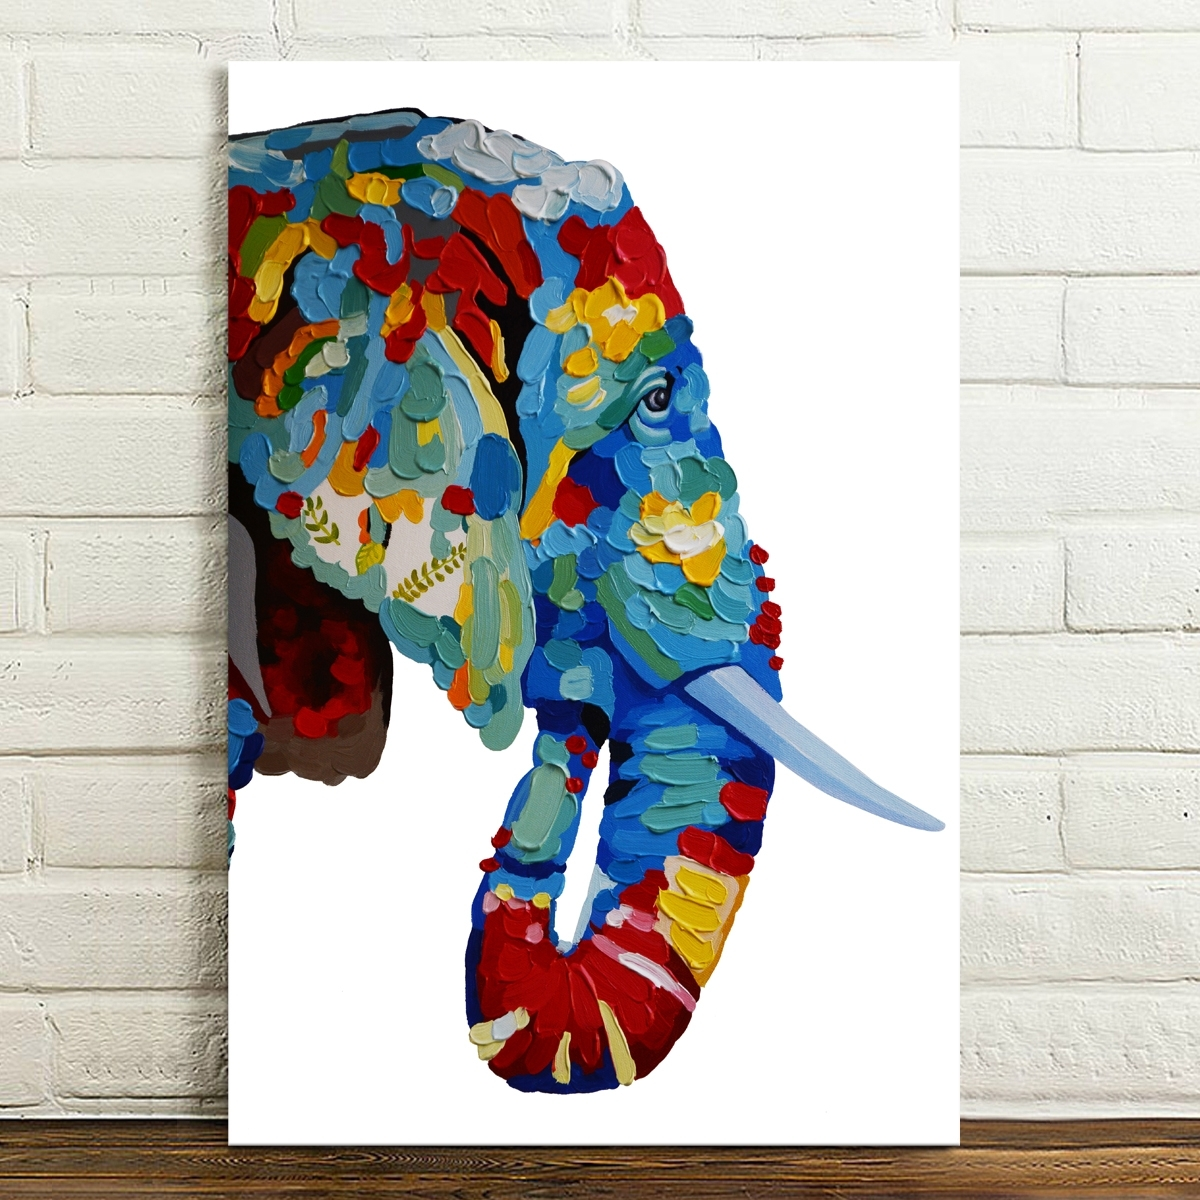 Abstract Canvas Prints Elephant Paintings Posters Home Decor Wall Pertaining To Most Recent Abstract Wall Art Posters (View 4 of 20)